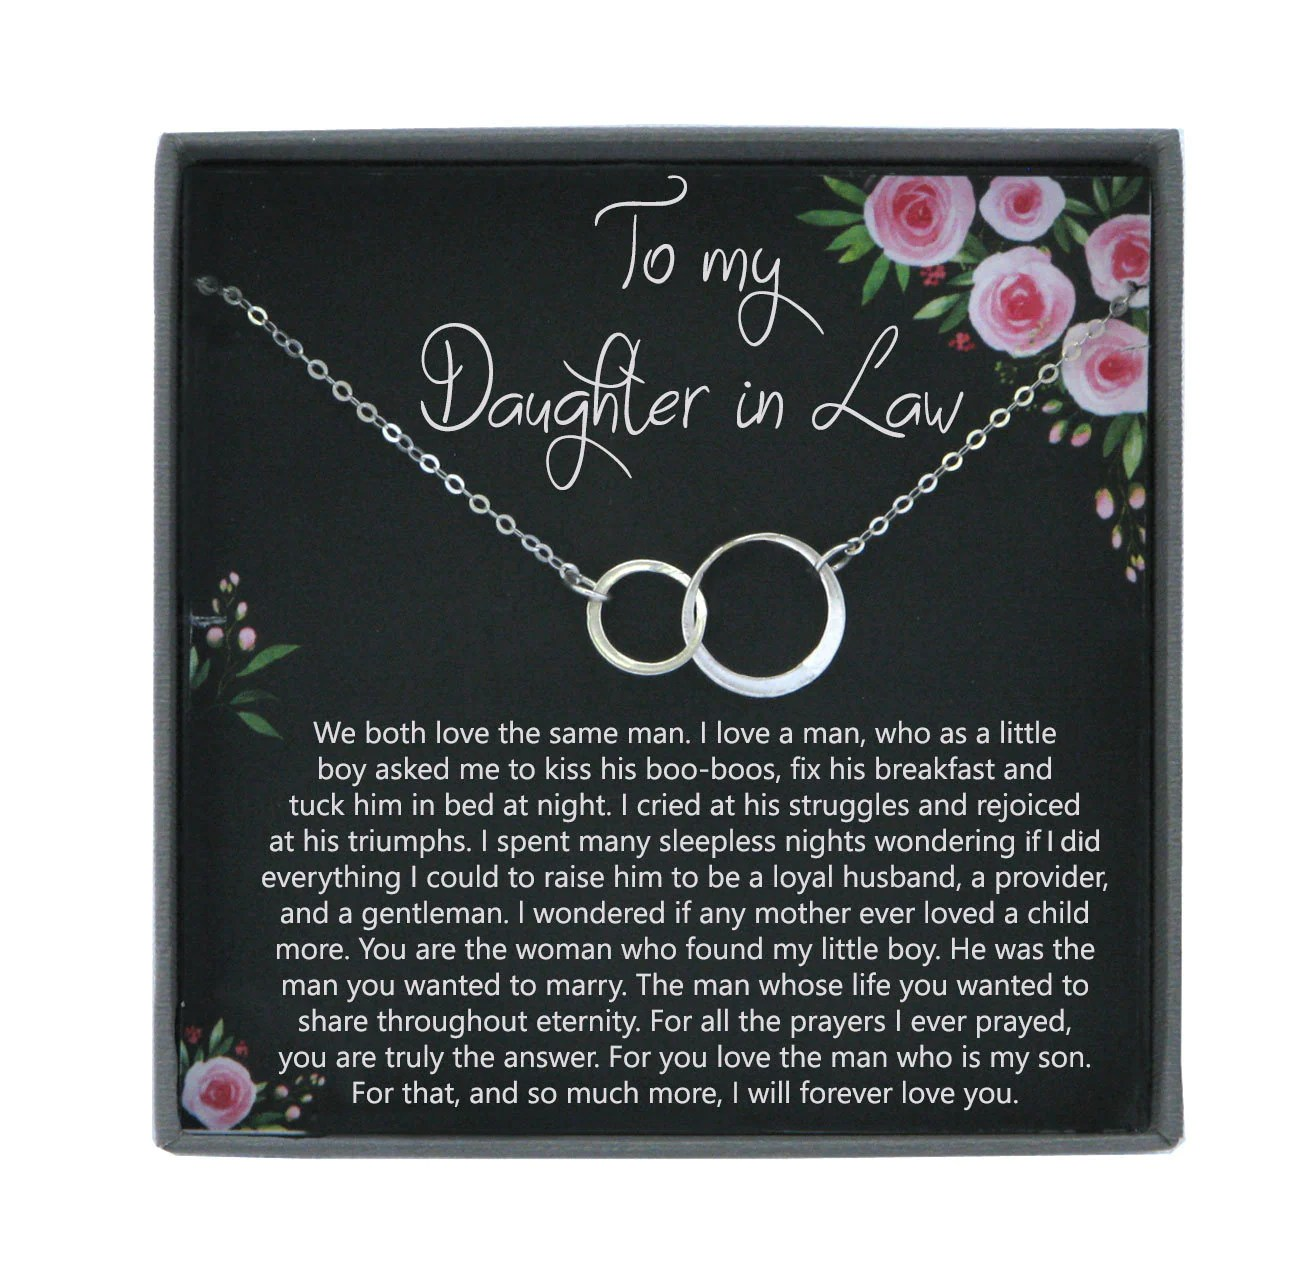 94 Birthday Gift Ideas For My Daughter Image Is Loading To